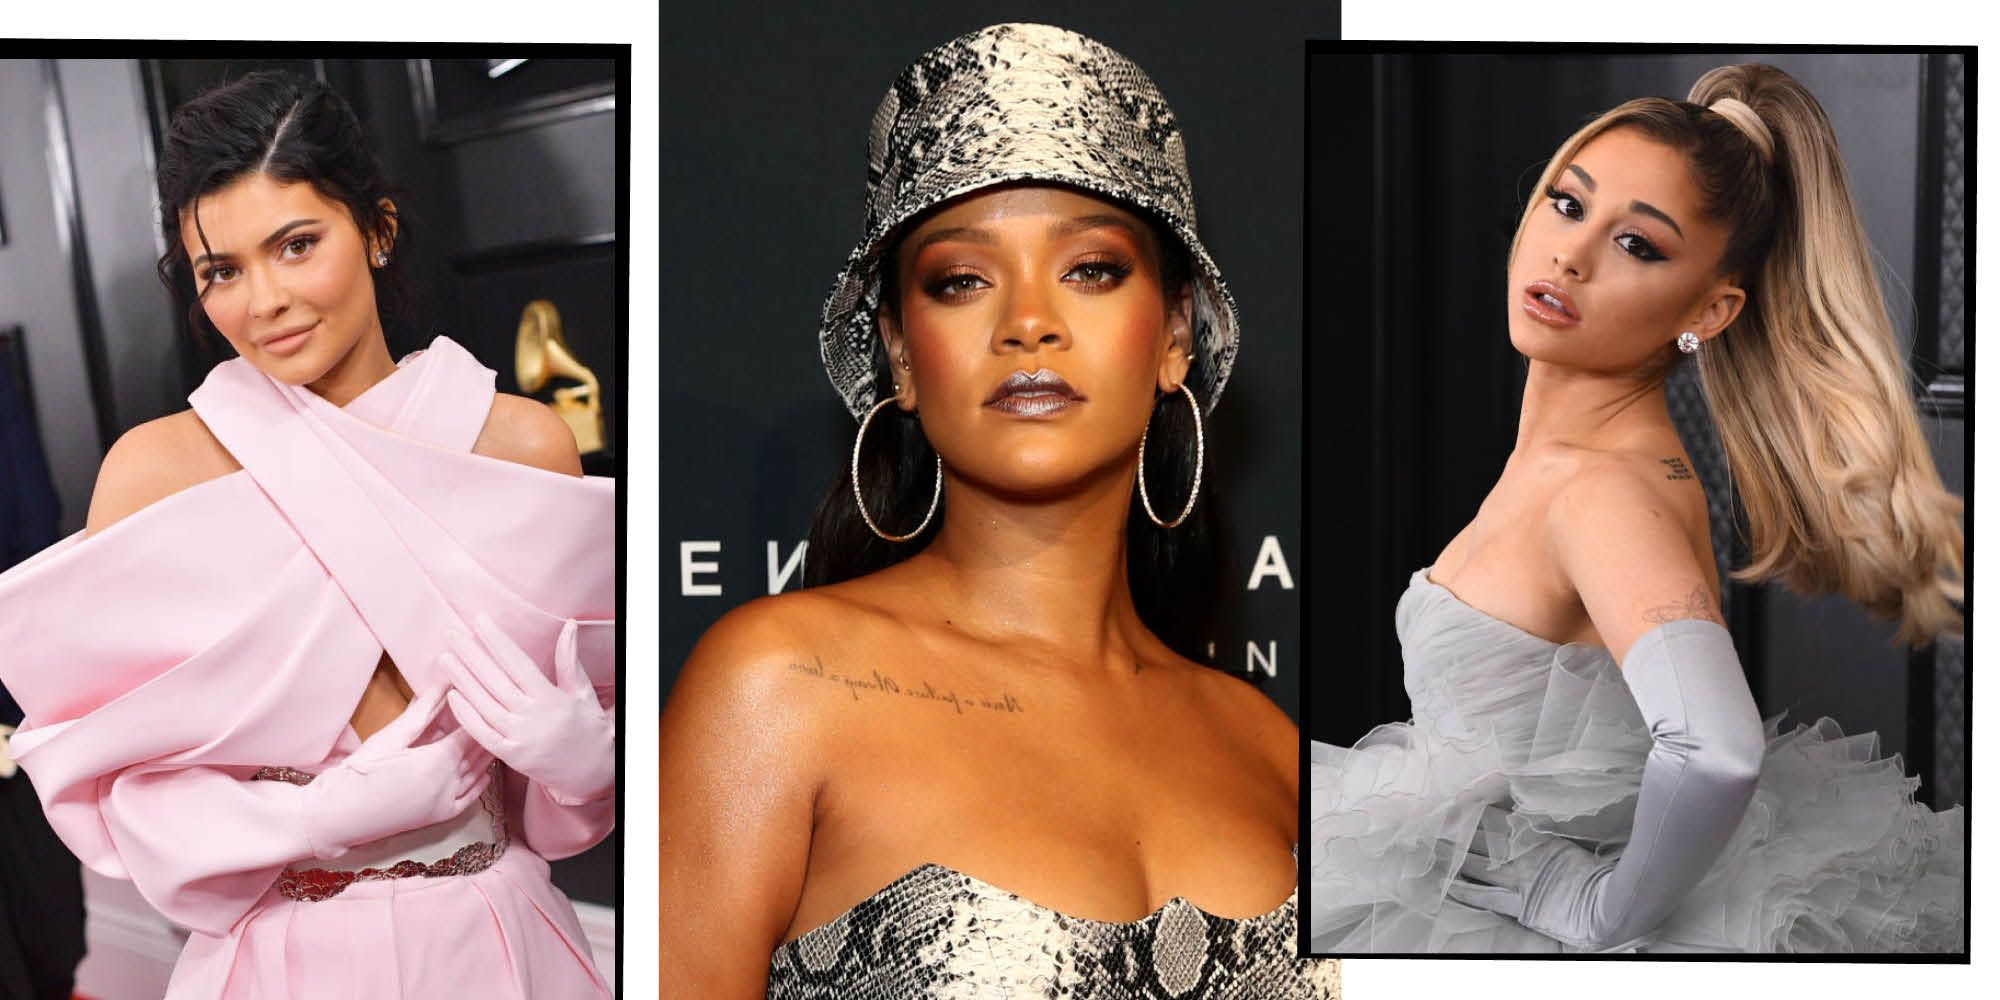 The Highest-Paid Female Celebrities Of 2020